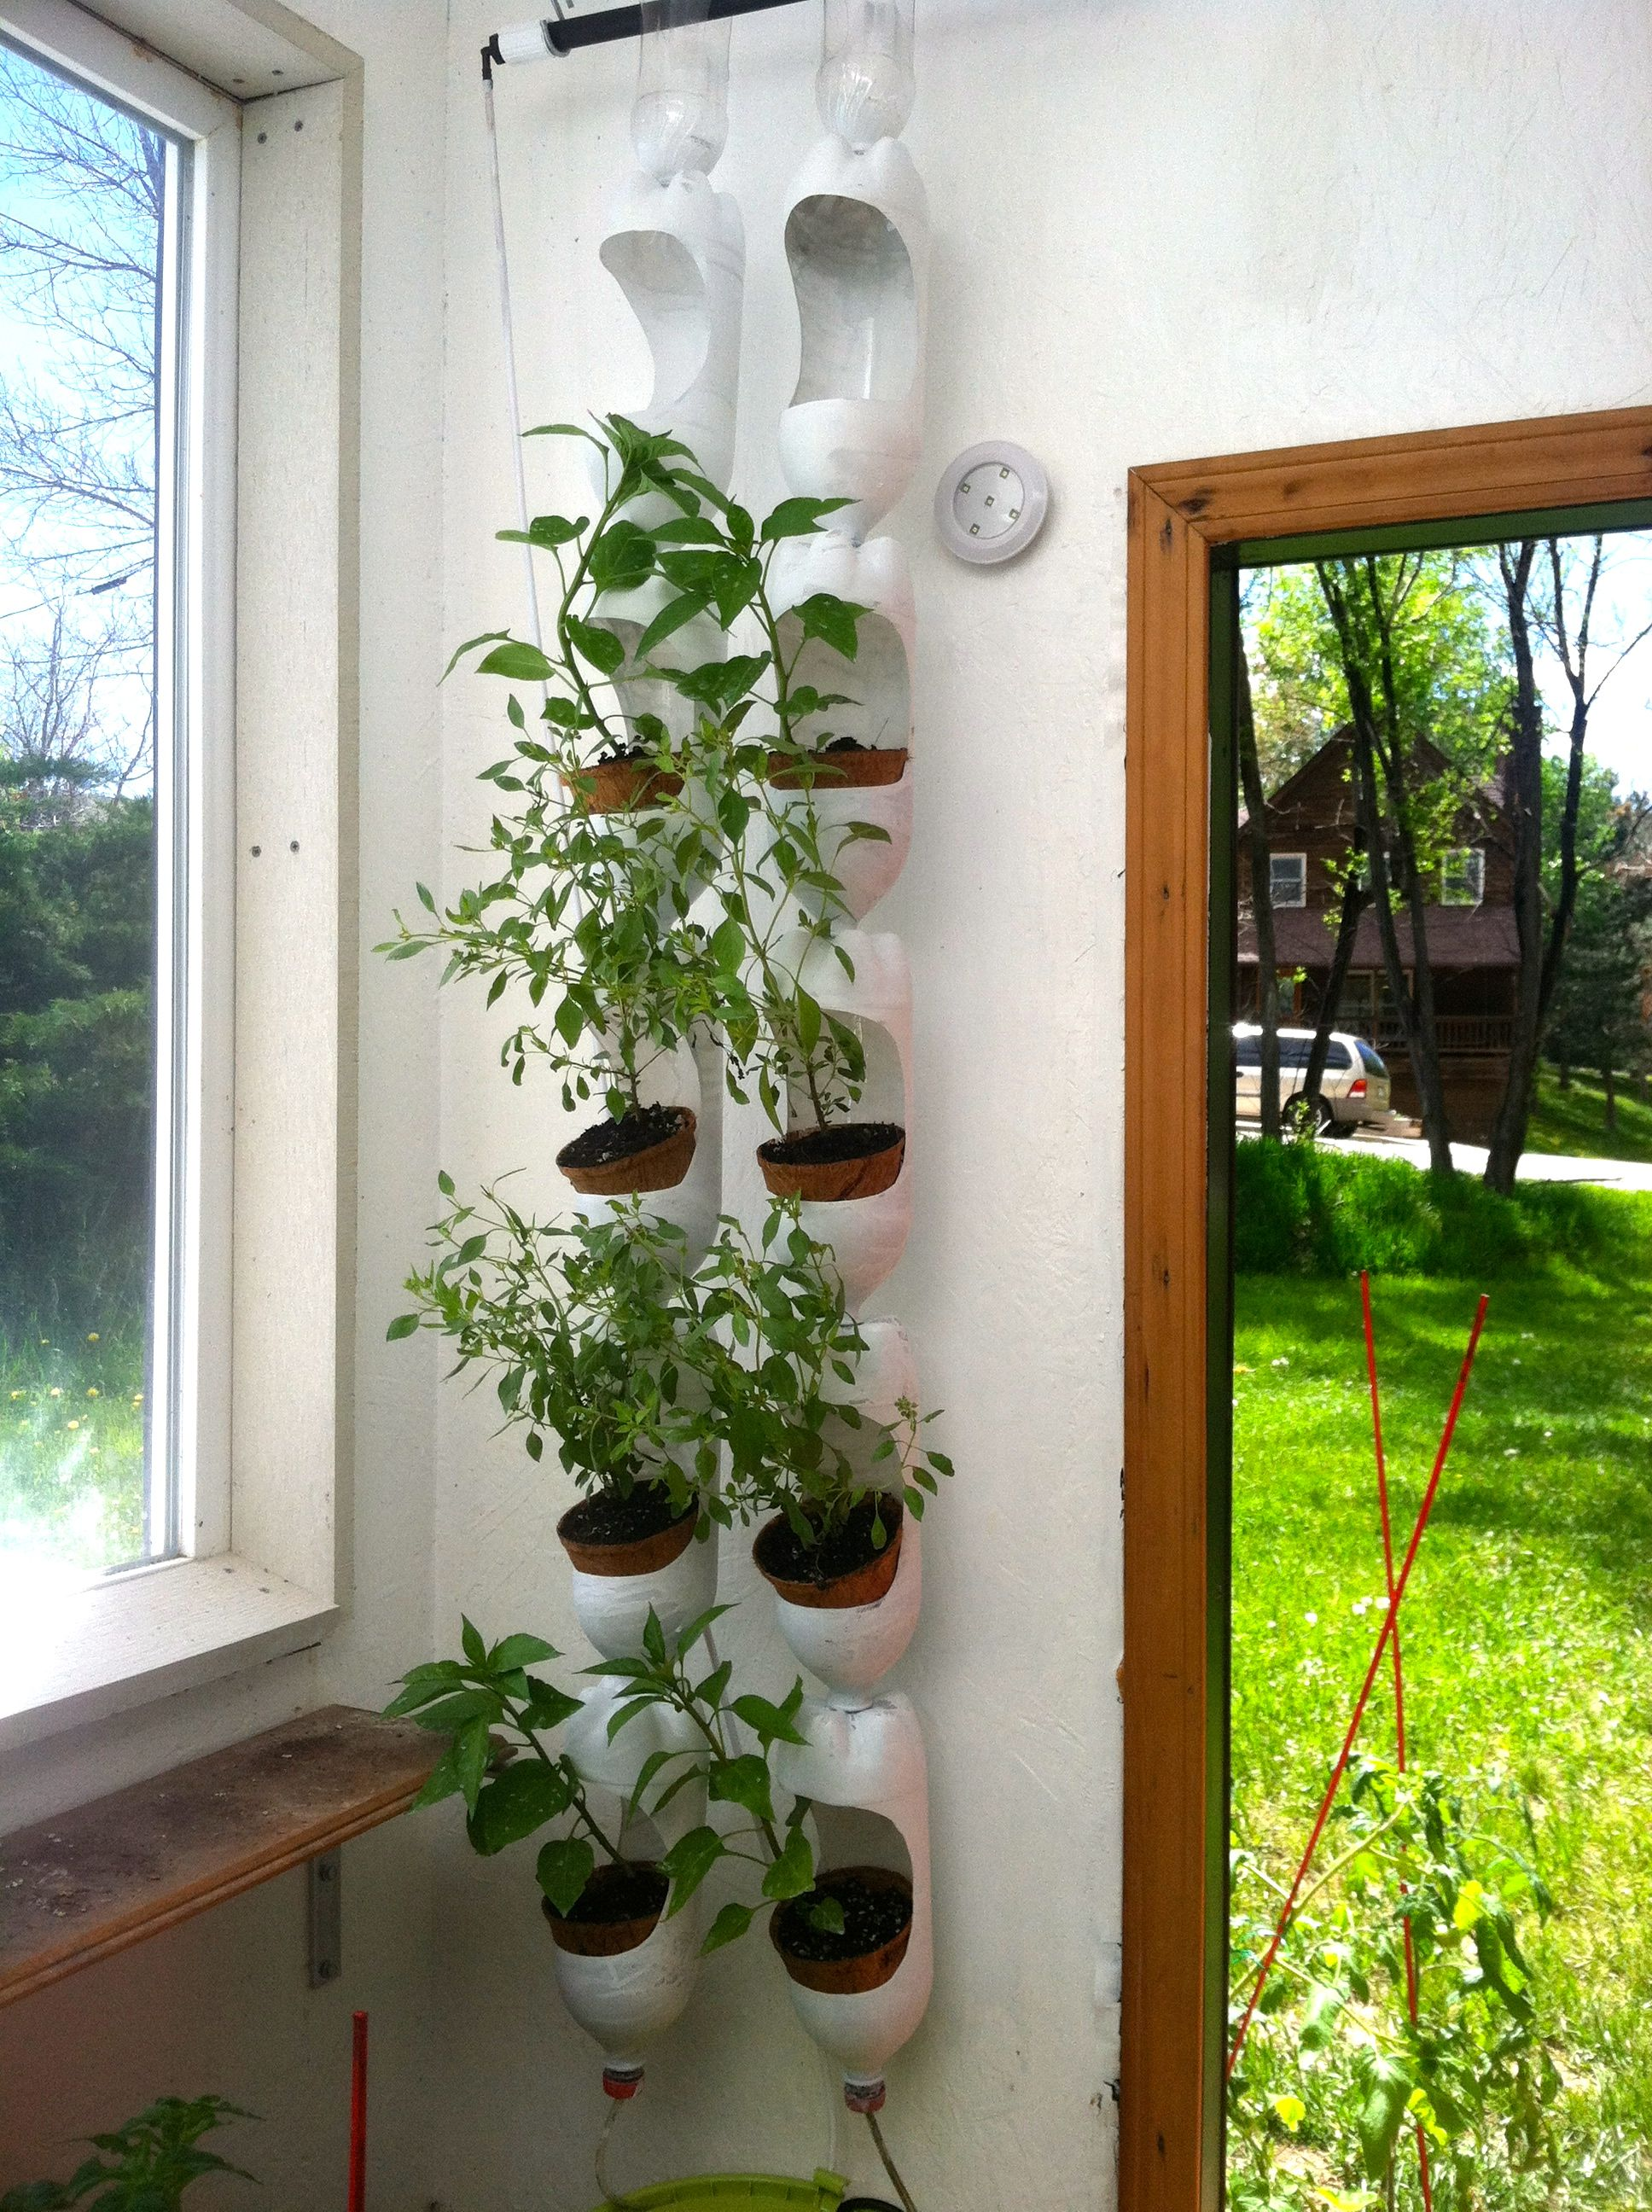 Plenty Of Basil Growing In Vertical Garden Made Out Of